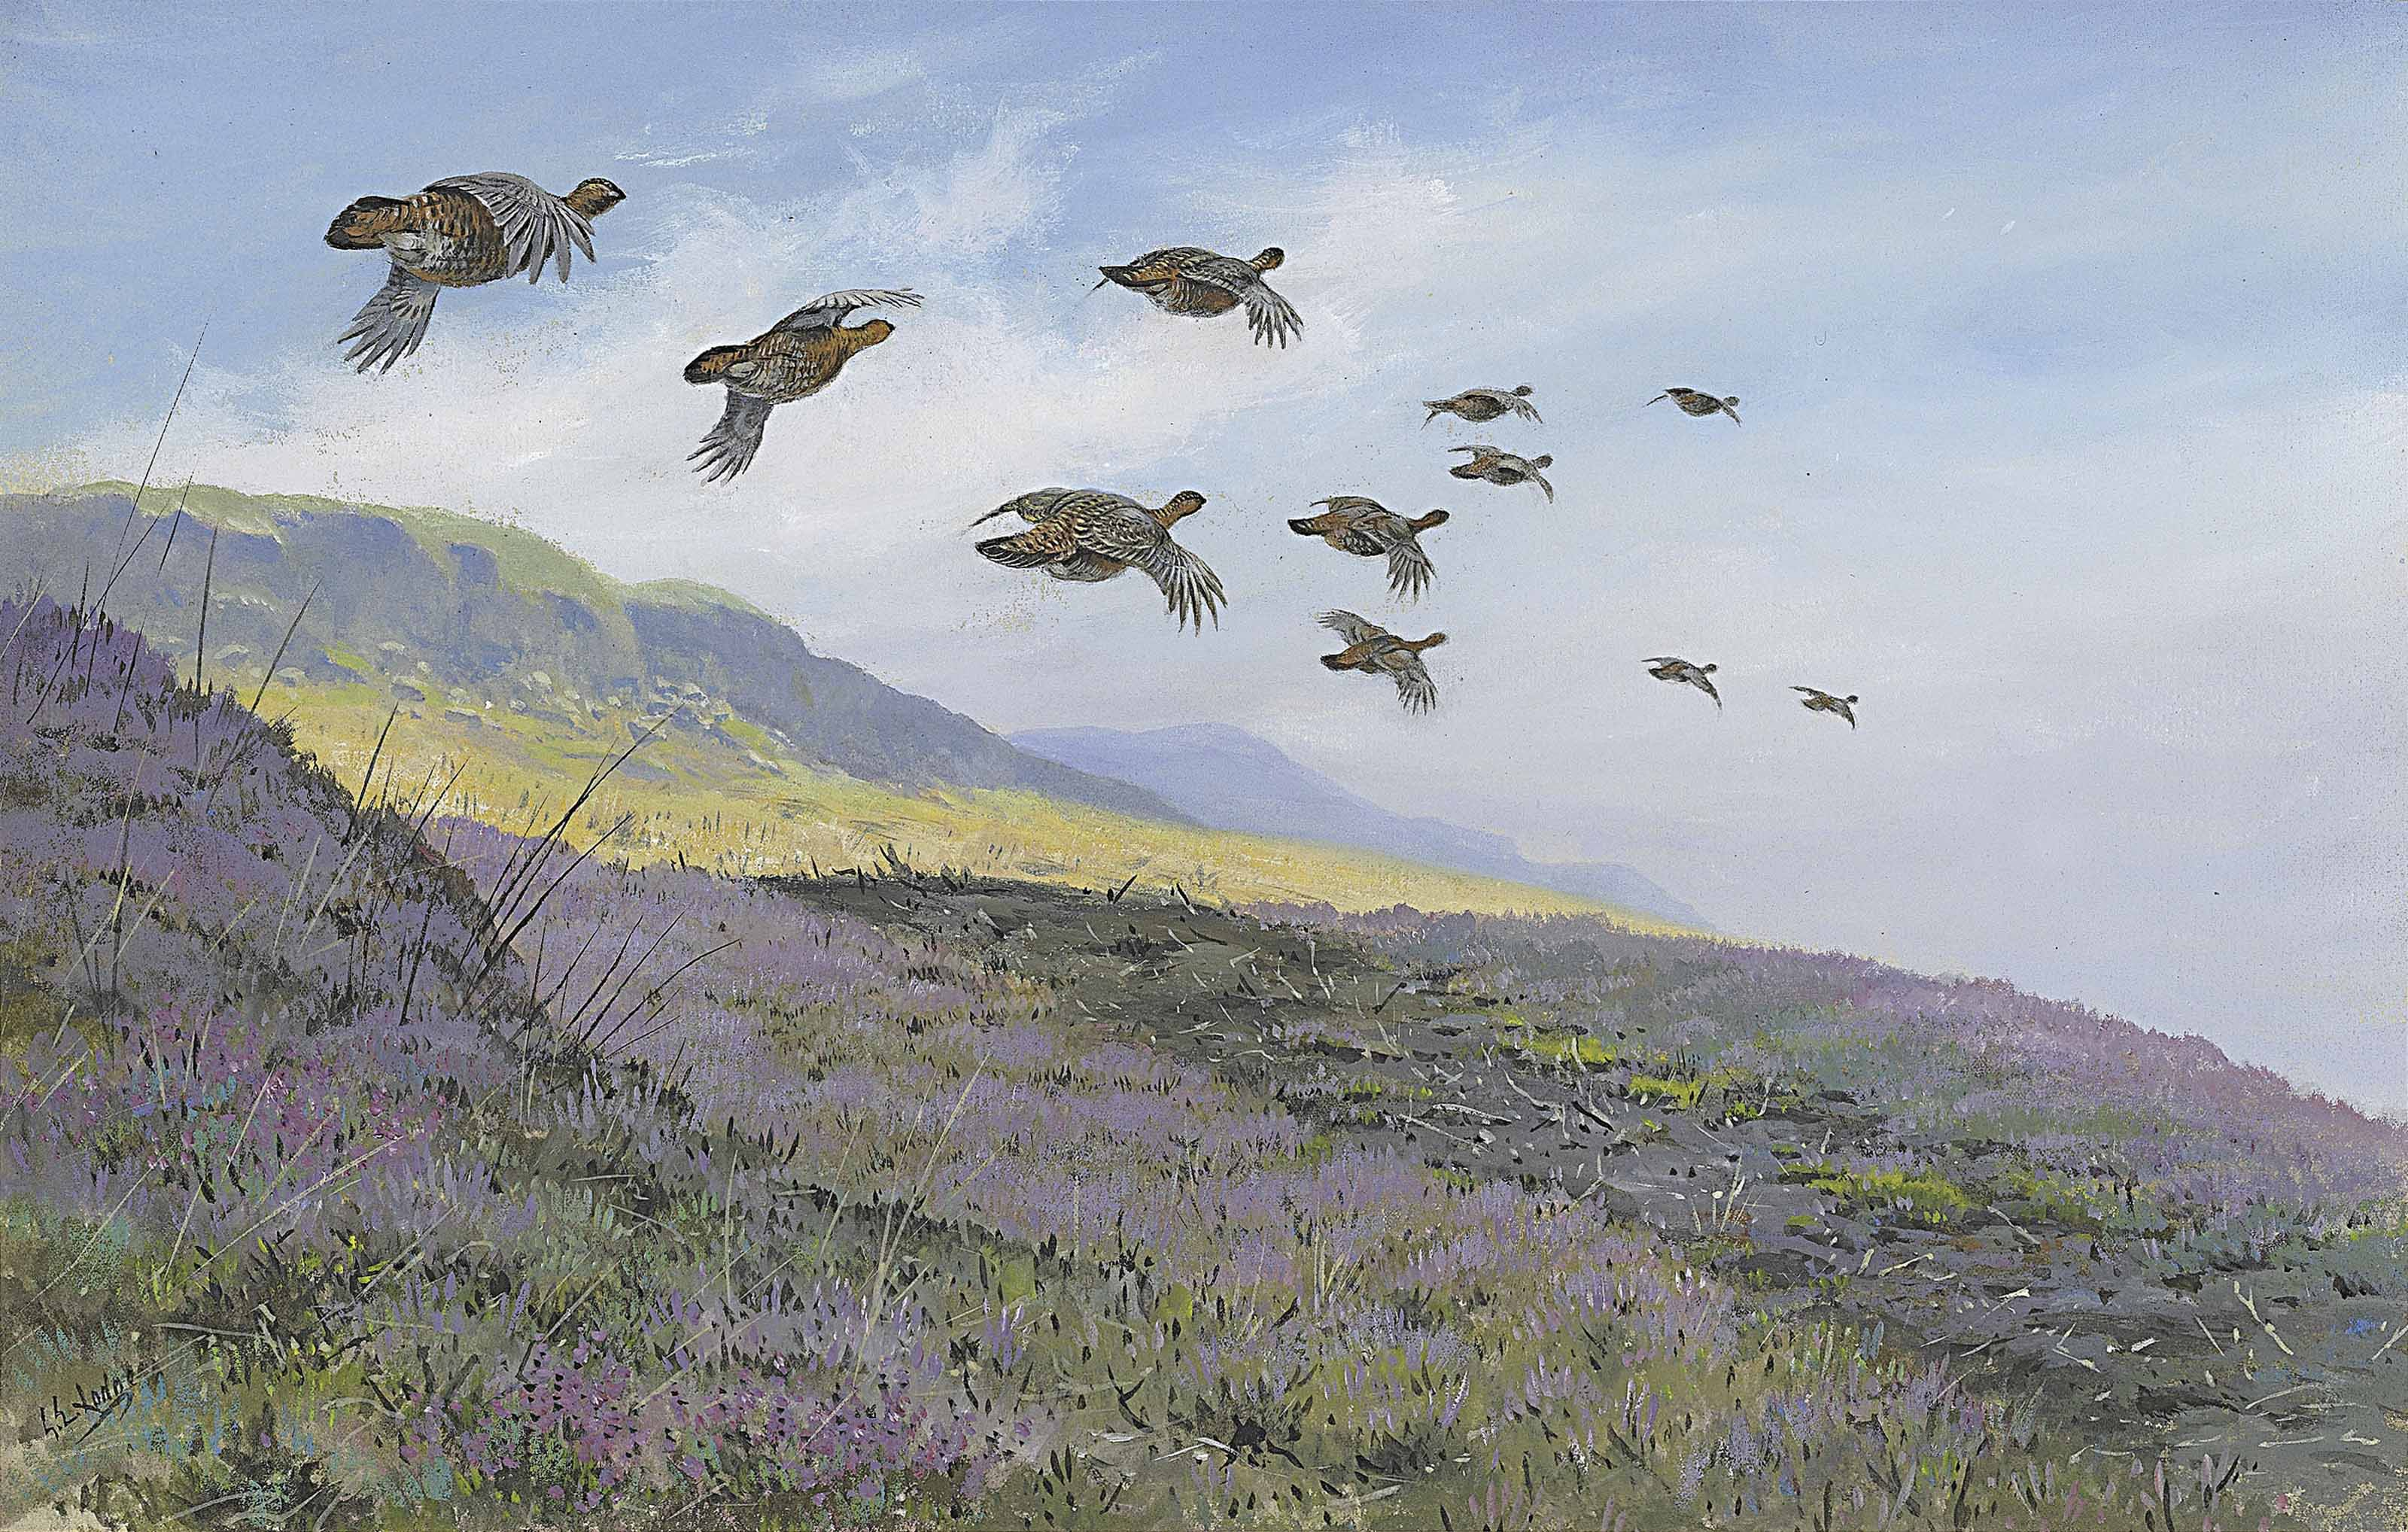 A covey of red grouse flighting over heather